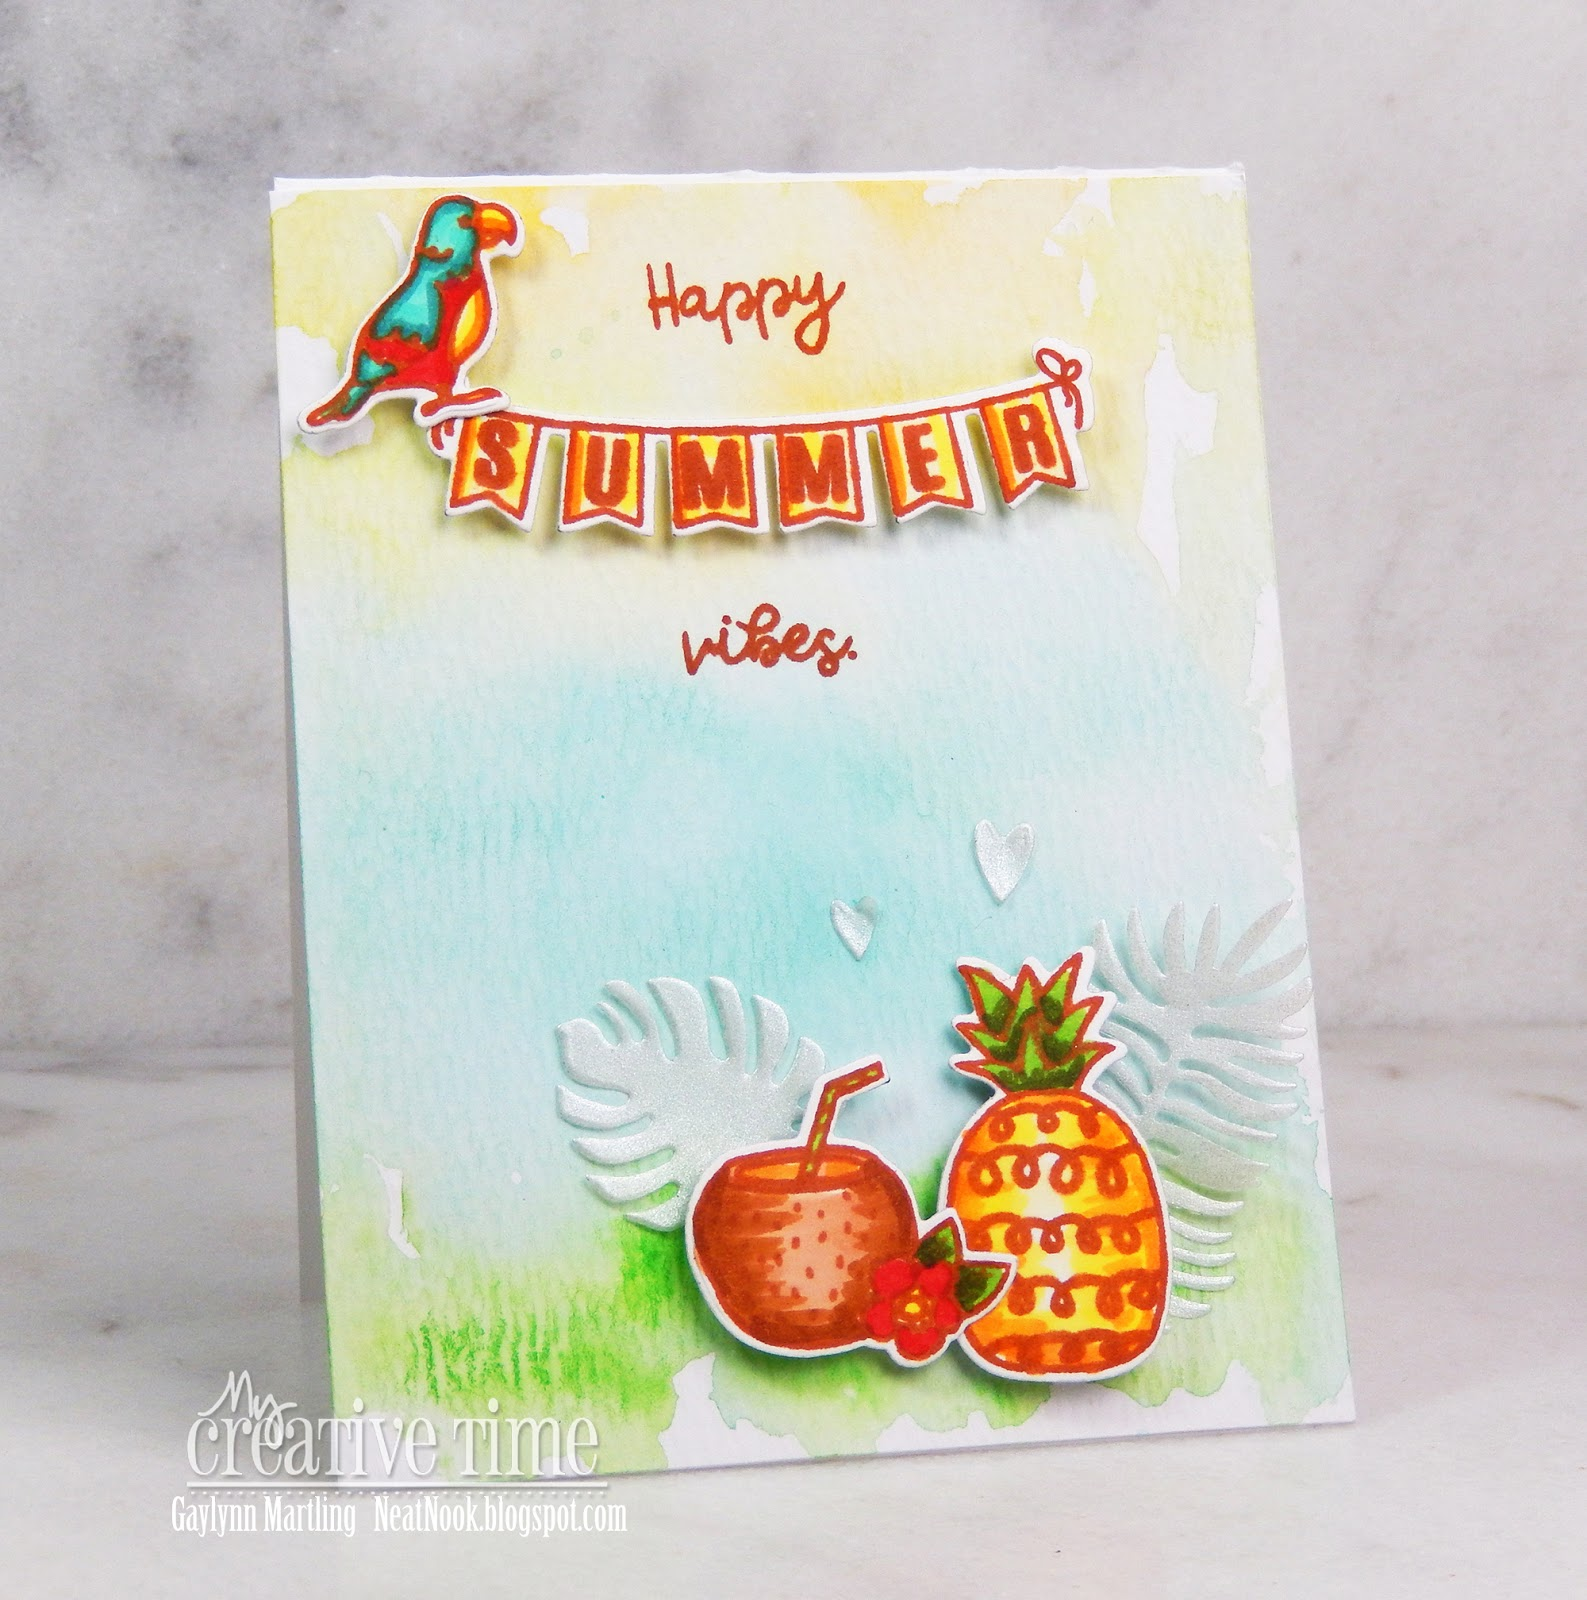 Today The MCT Team Is Sharing Day 2 Sneak Peeks Of 81st Edition Release Here My Tropical Summer Watercolor Card